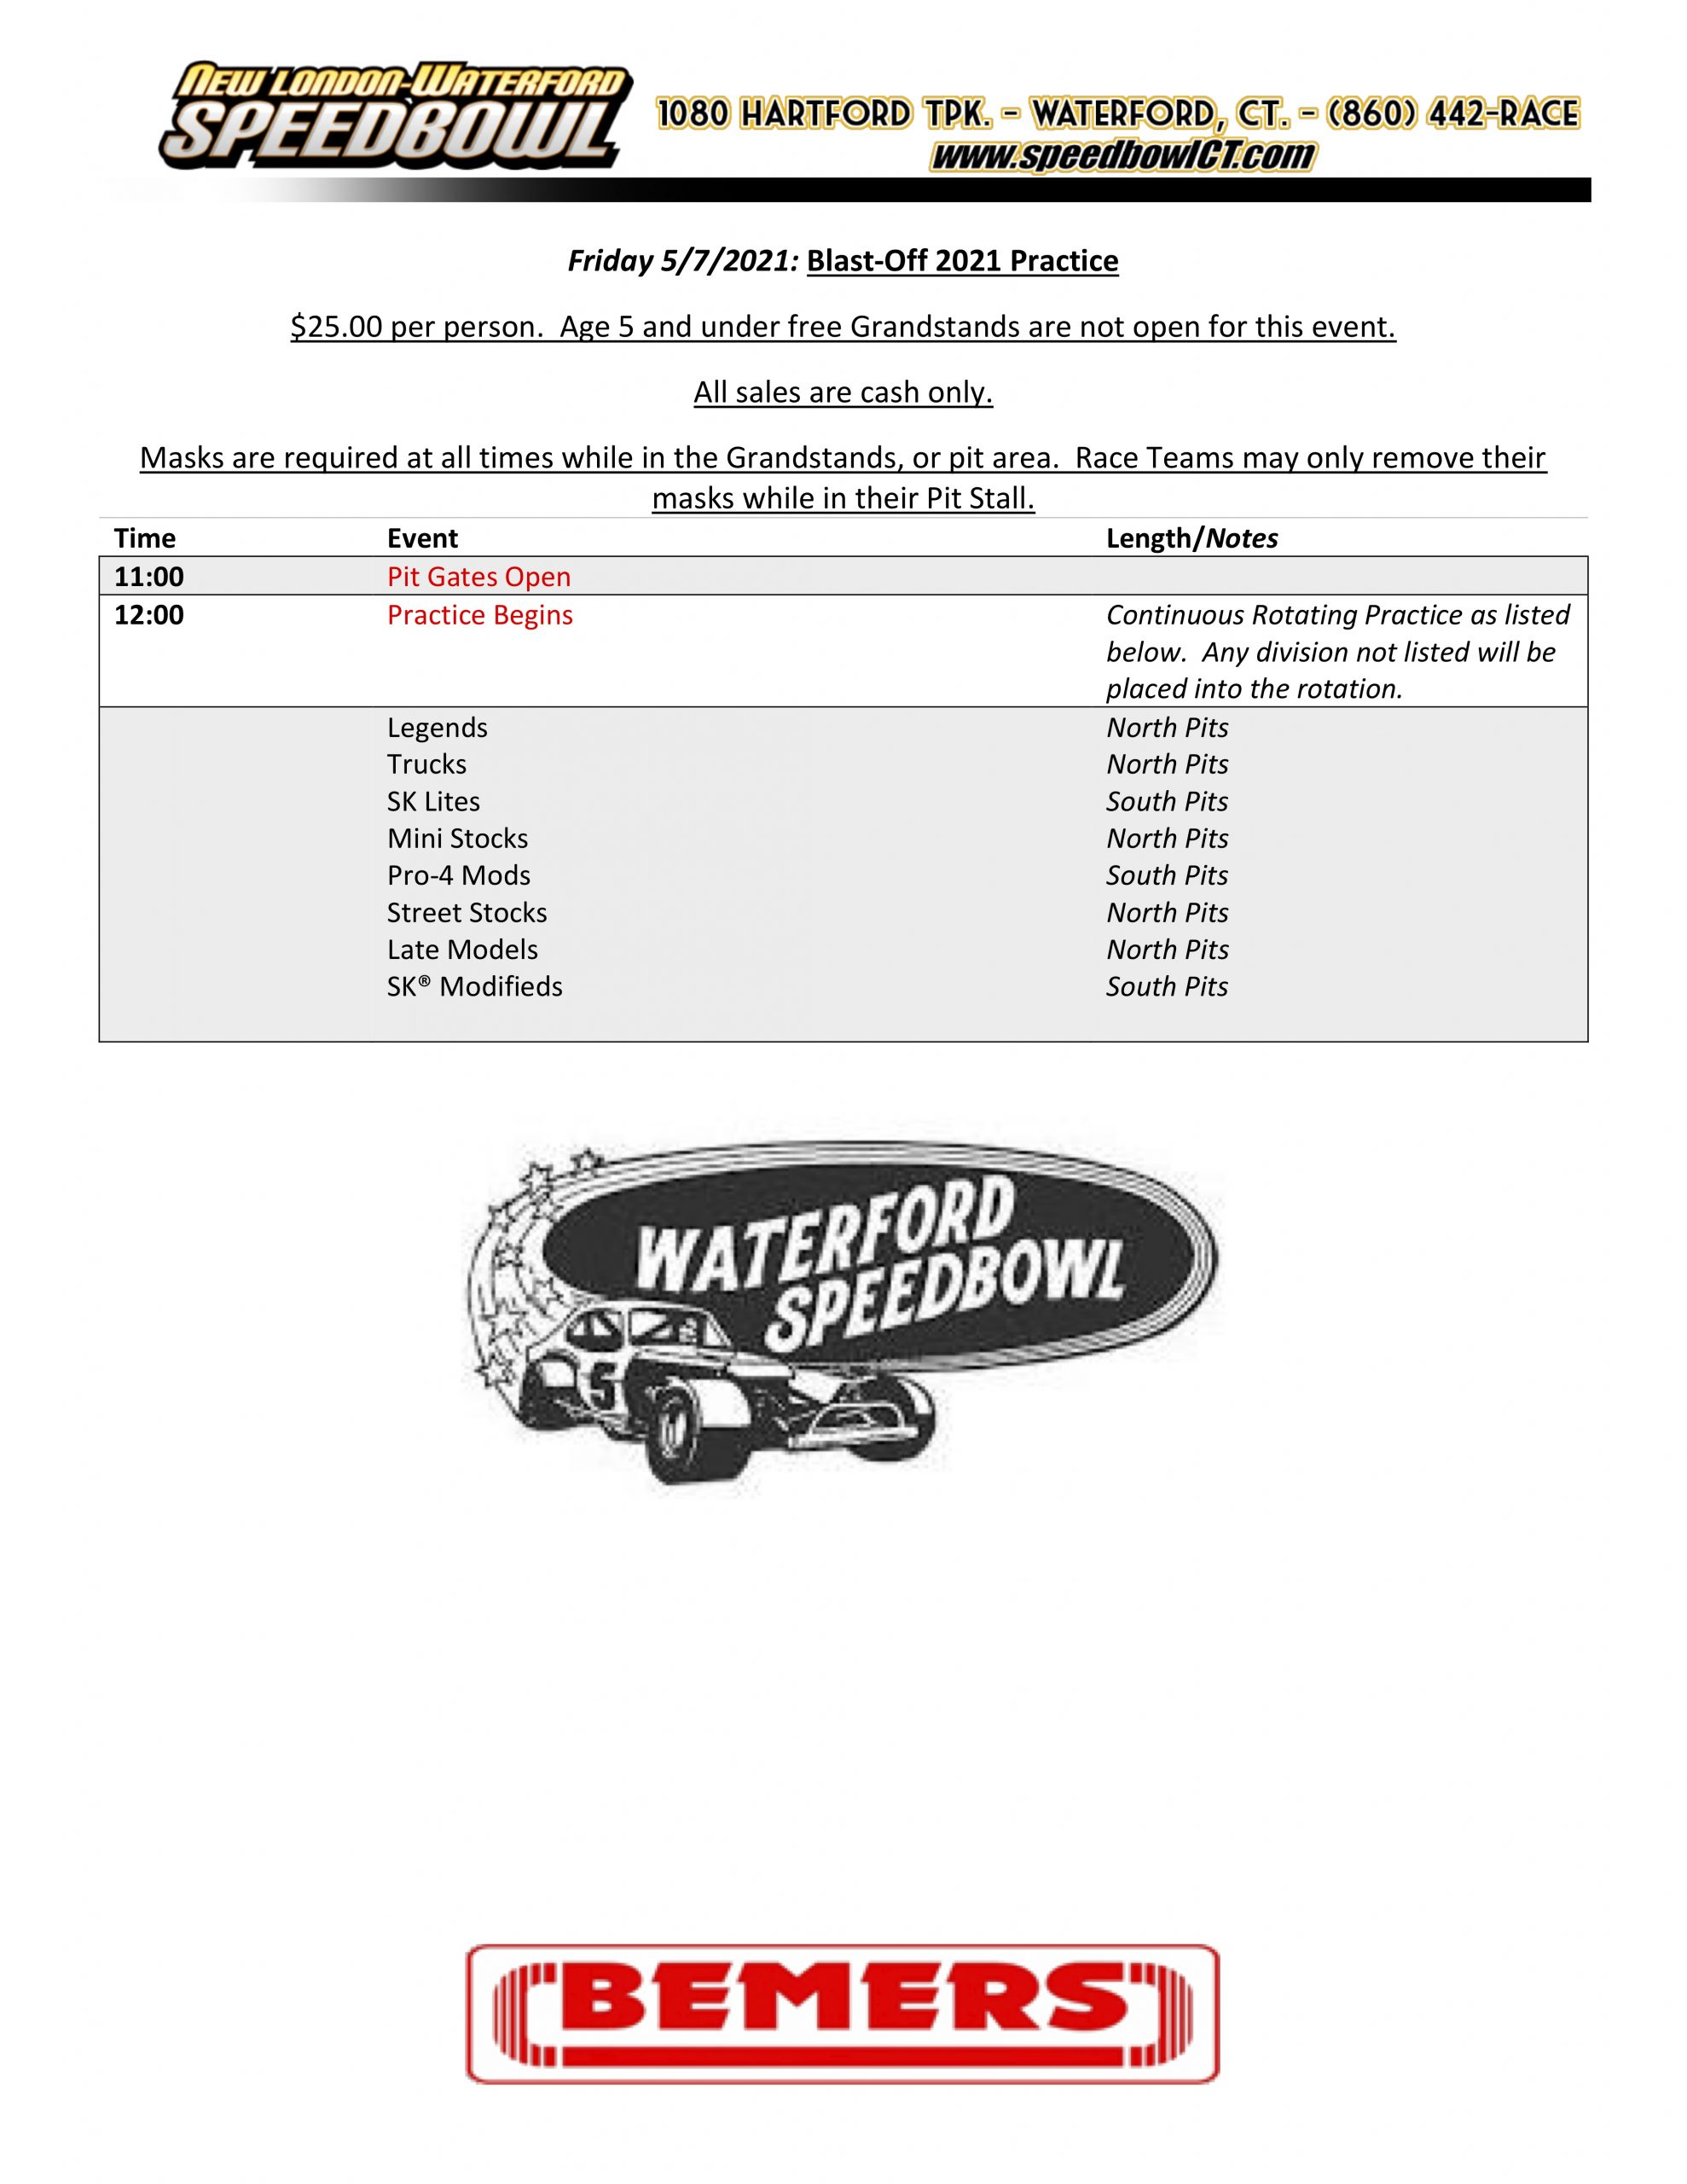 Friday May 7th Practice Schedule